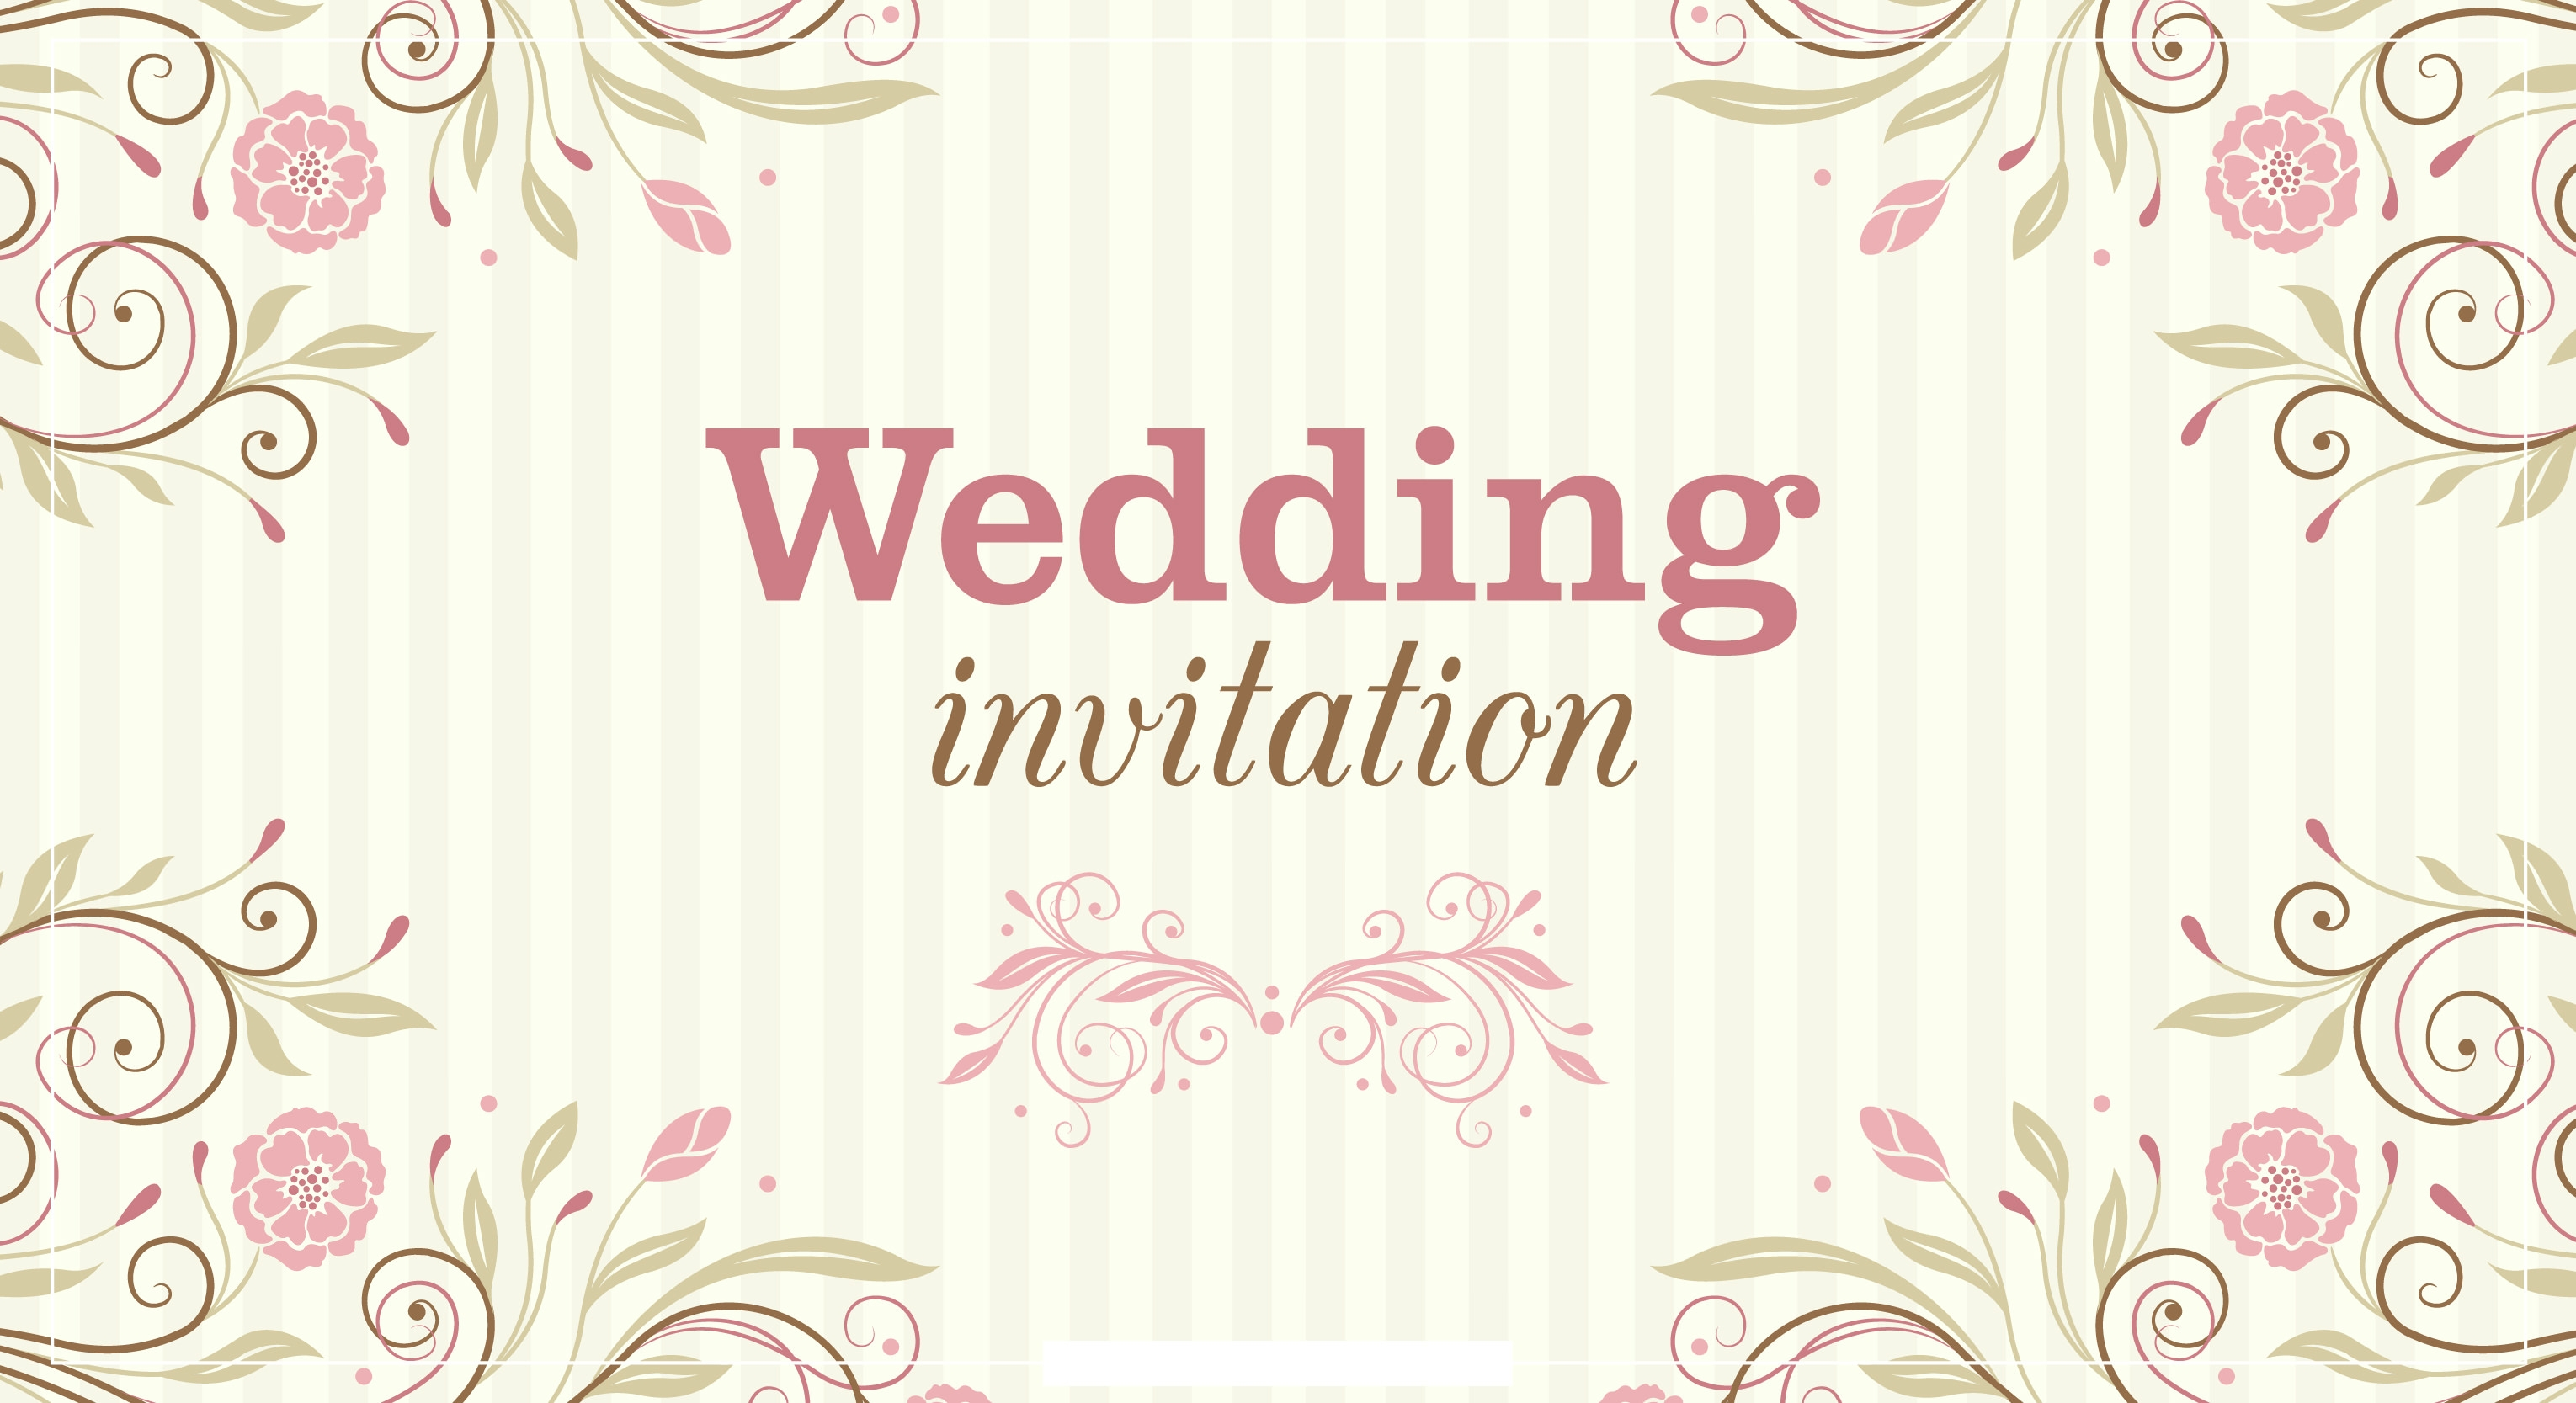 beautiful floral wedding invitation background - Wedding Invitation Background